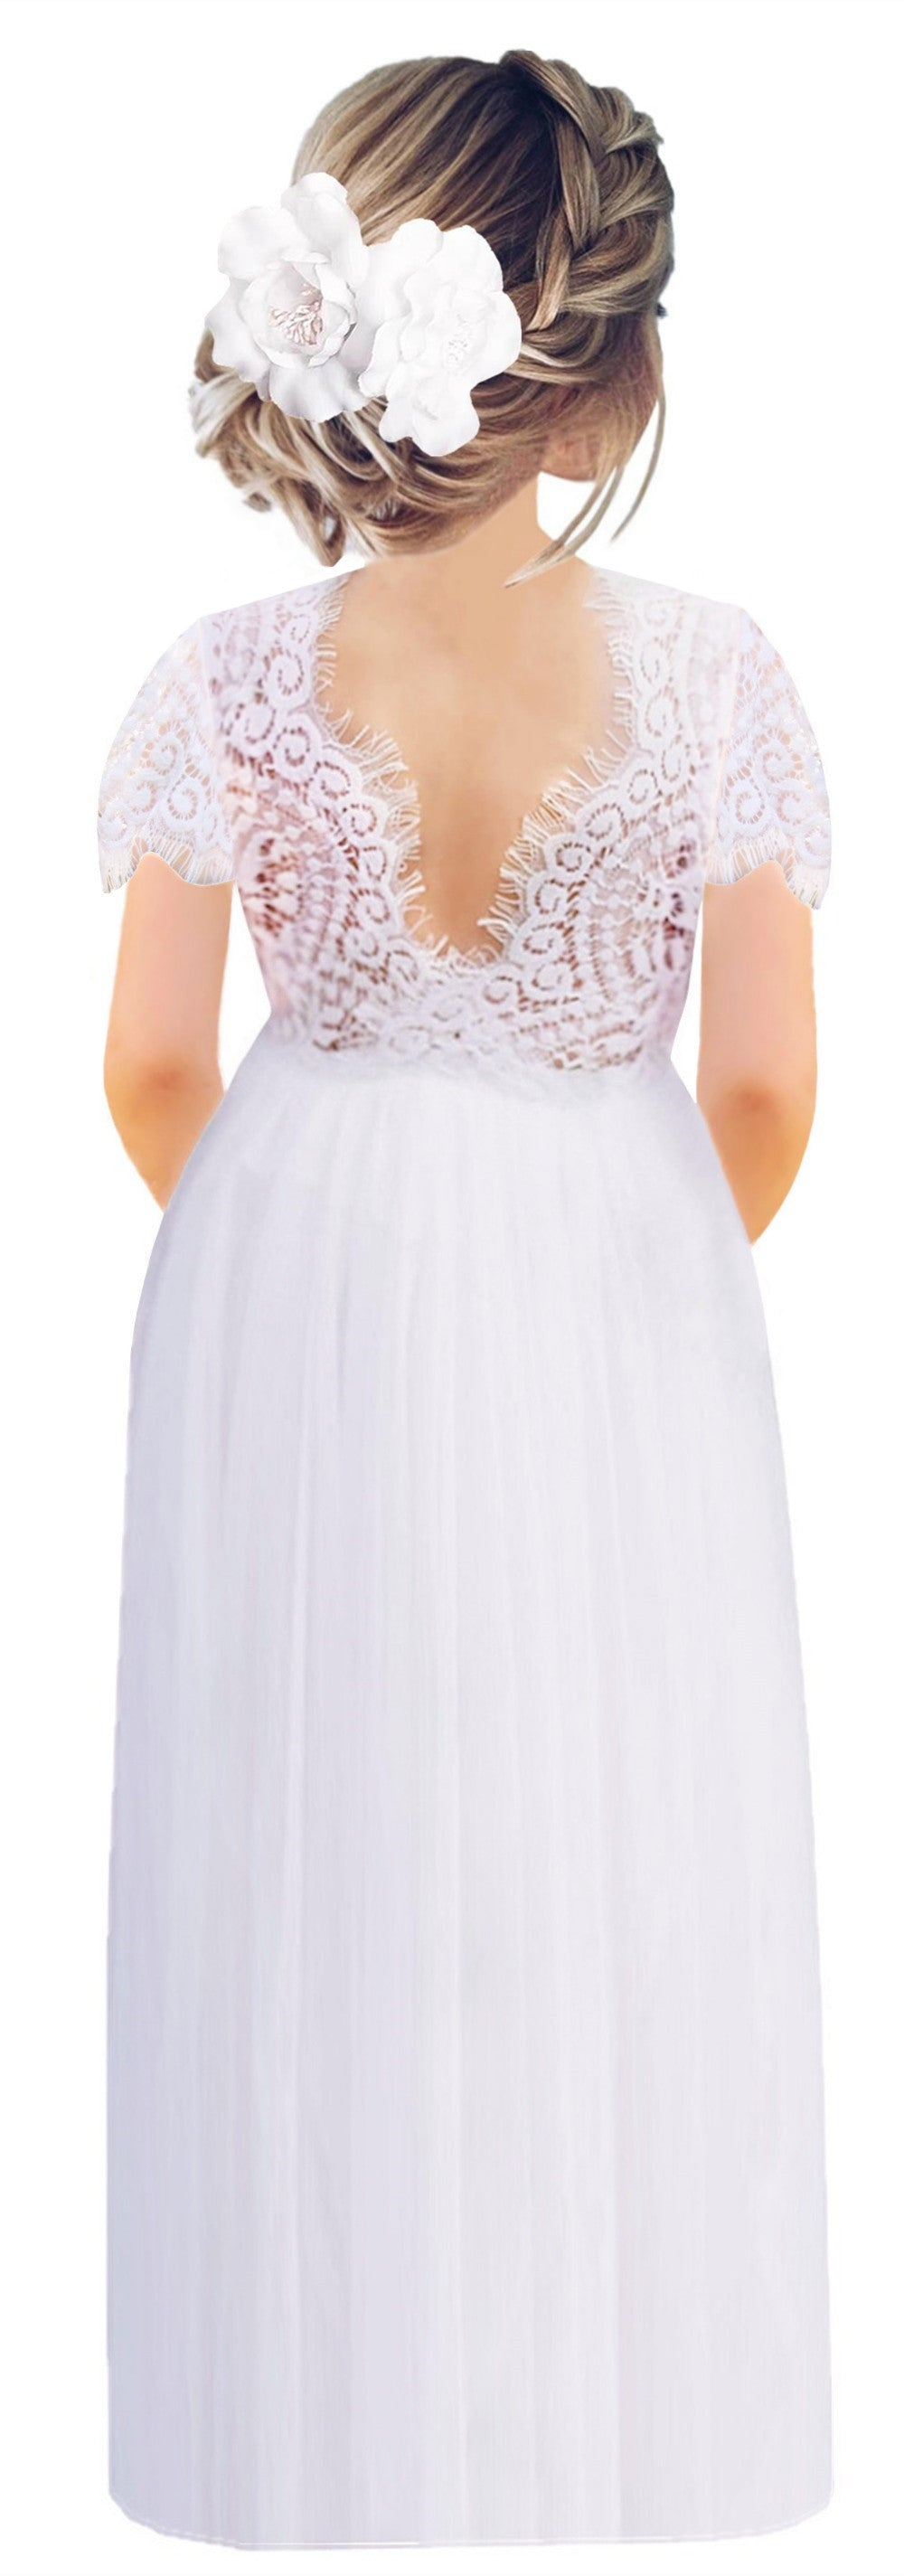 2BUNNIES Girl Peony Lace Back Short Sleeve Maxi Straight Dress (White)